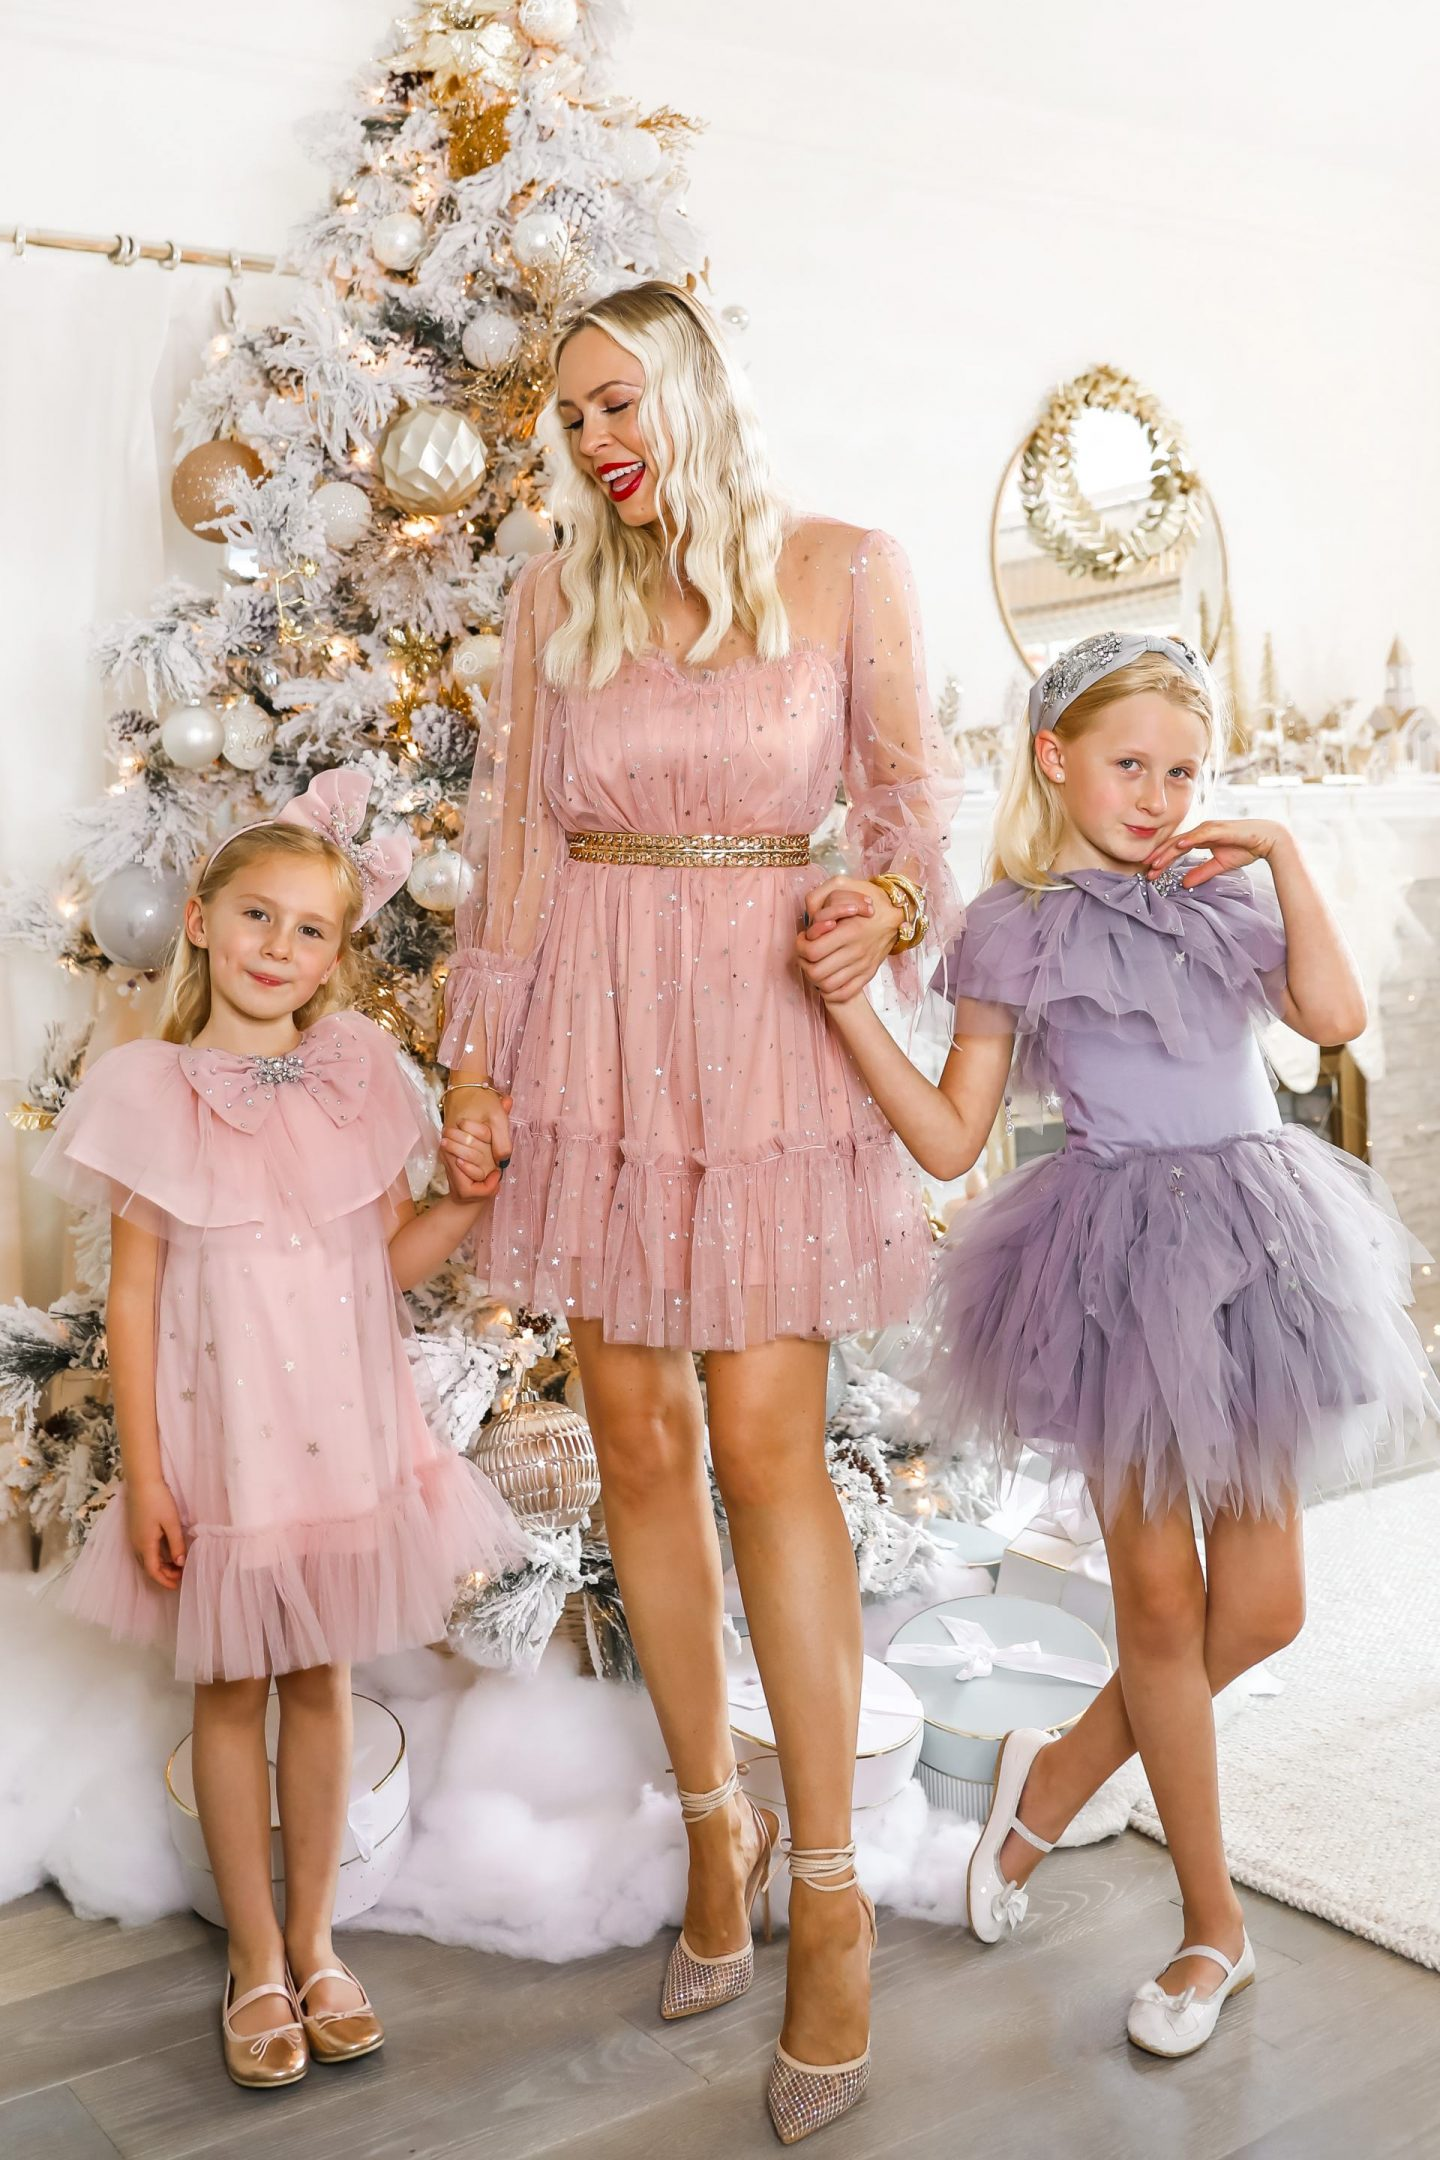 2020 Gift Guide for kids, including best books, dresses, roller blades and handmade items. Featured by San Francisco fashion blogger Lombard & Fifth.